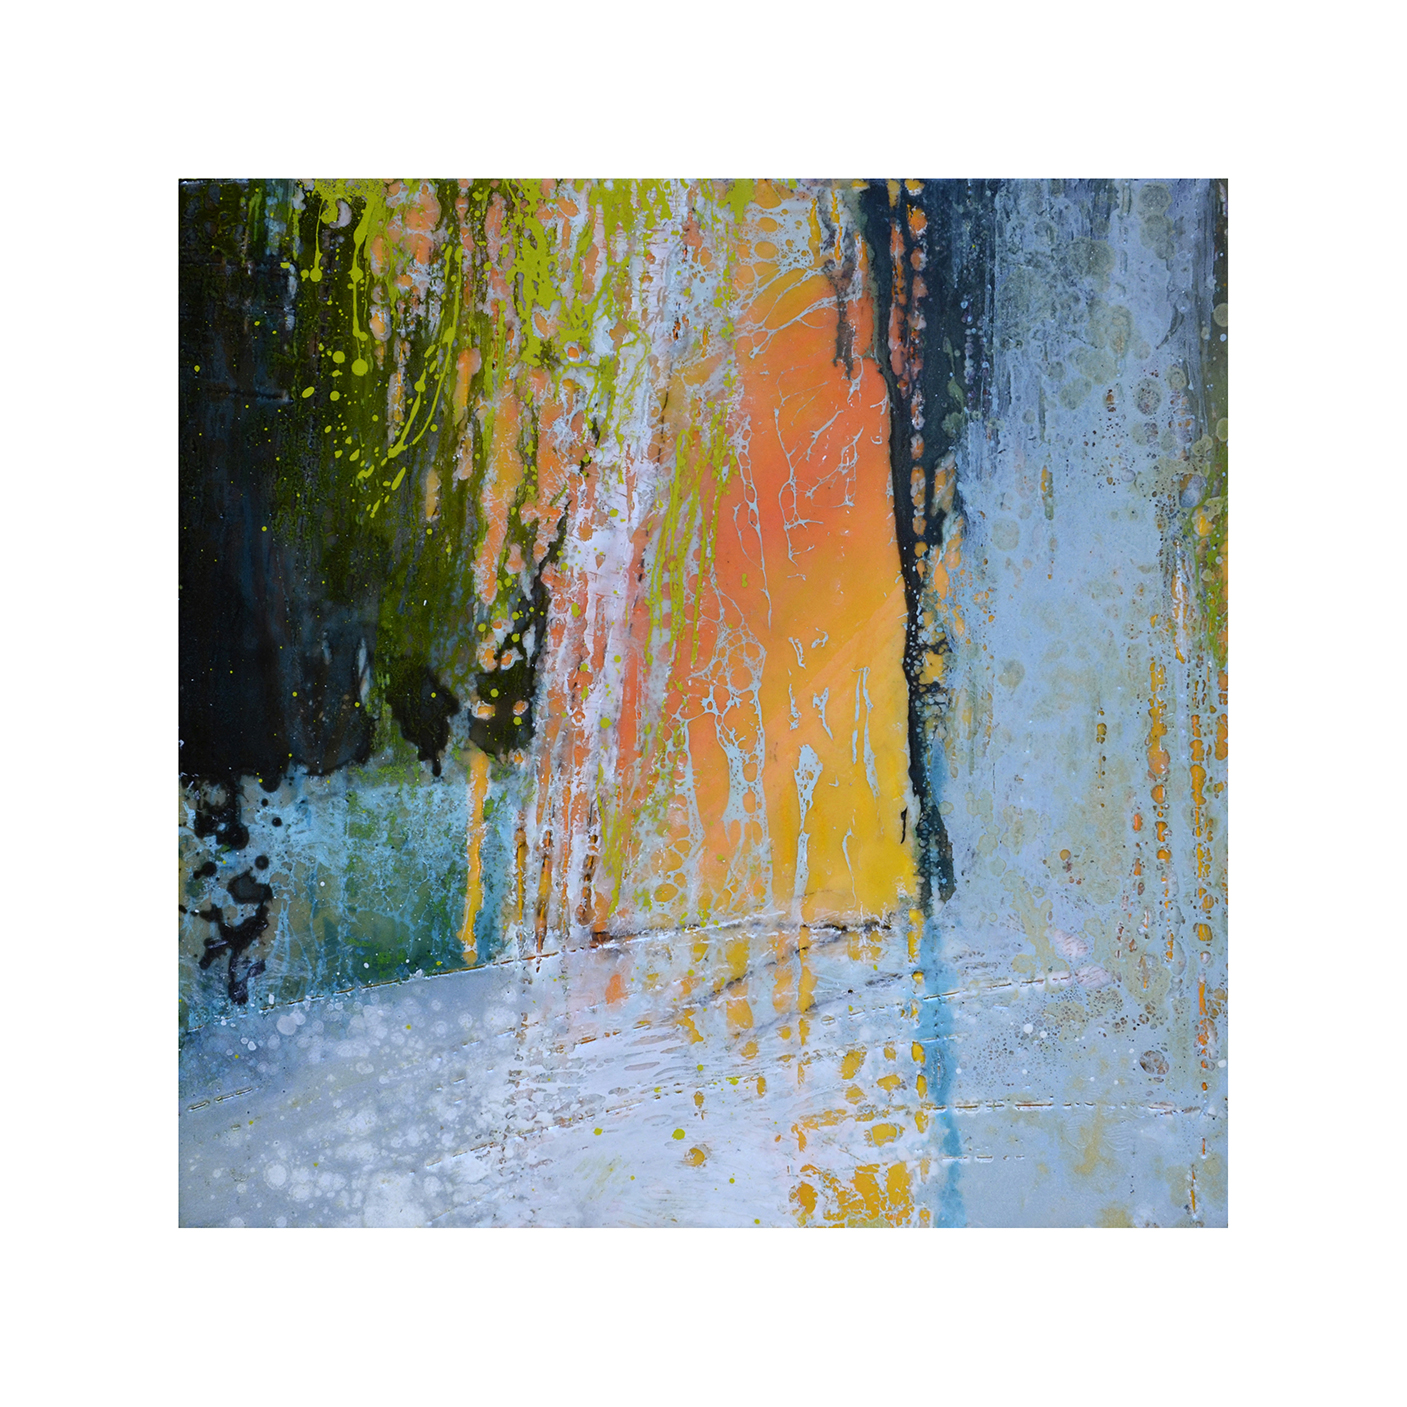 Tropical Immersion 1   12 x 12  Encaustic on Panel  $300